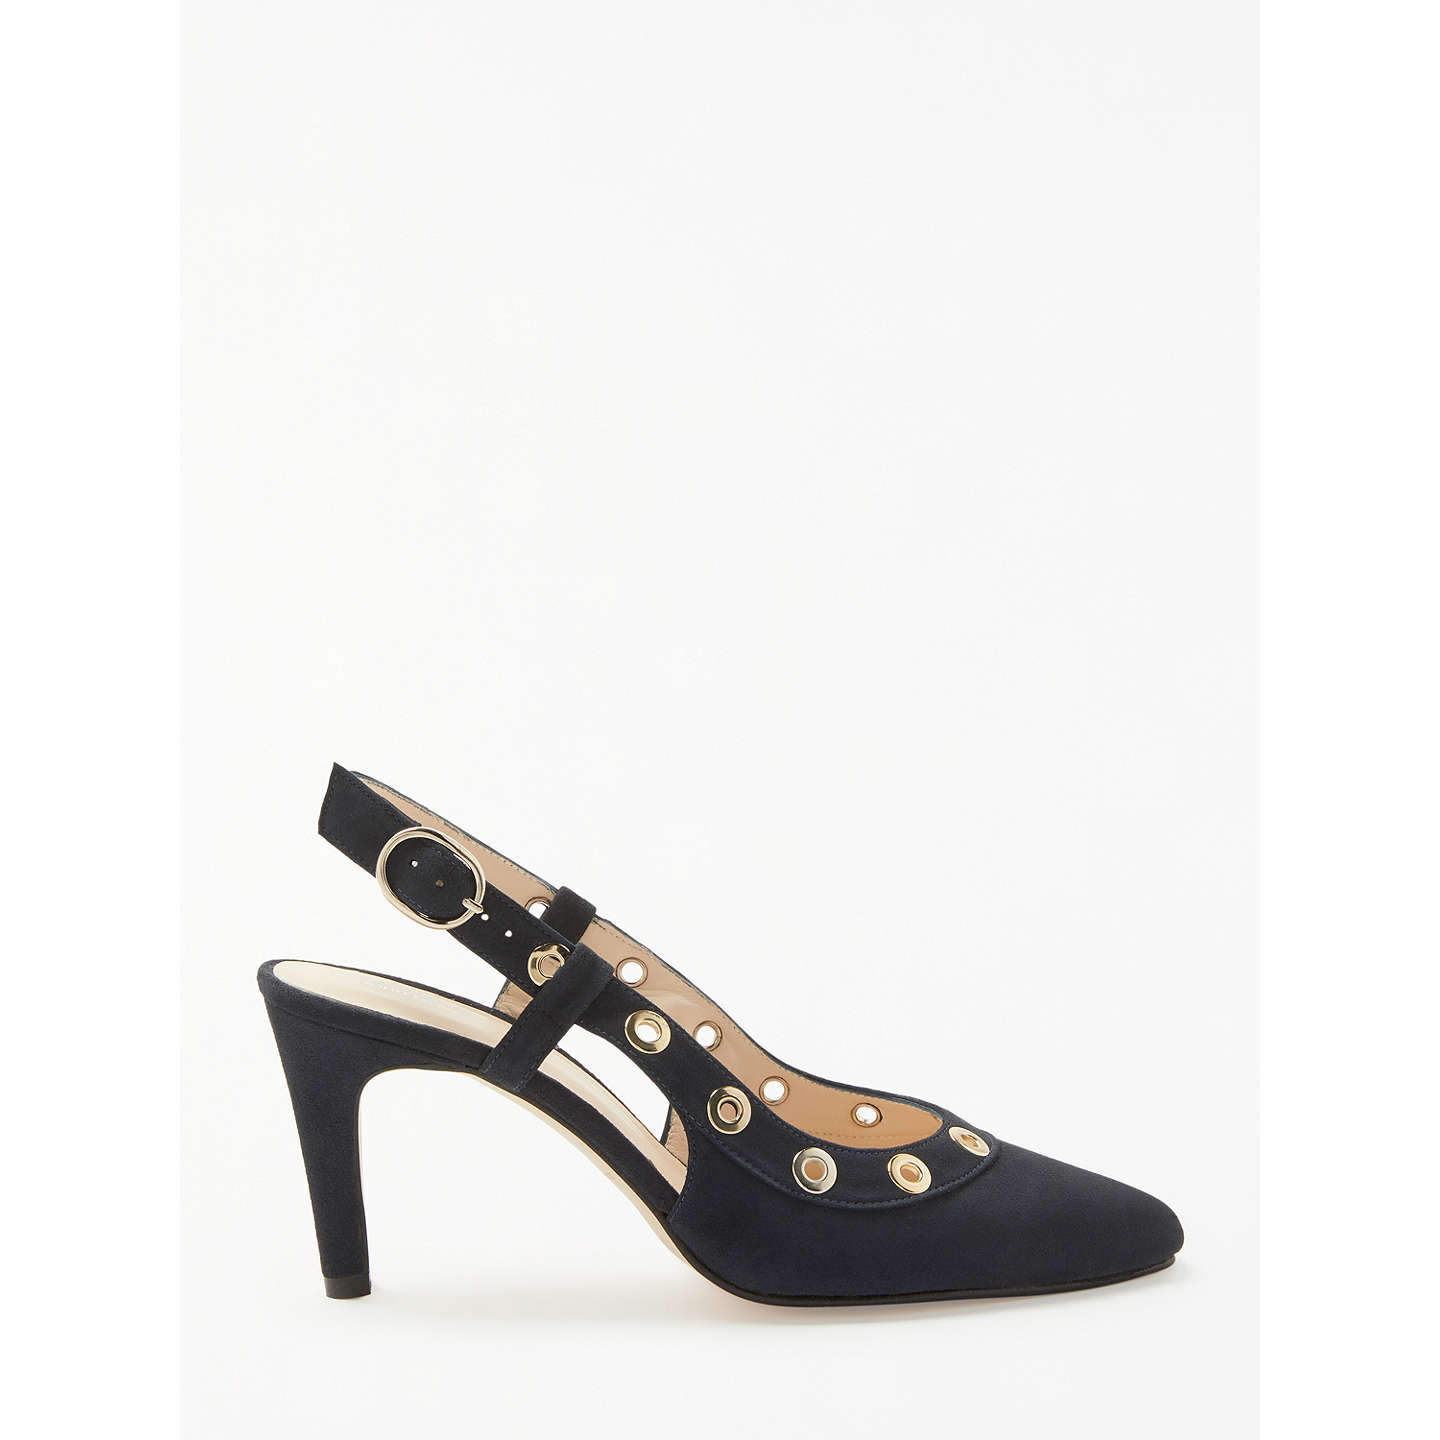 BuyJohn Lewis Alex Eyelet Court Shoes, Navy Suede, 3 Online at johnlewis.com